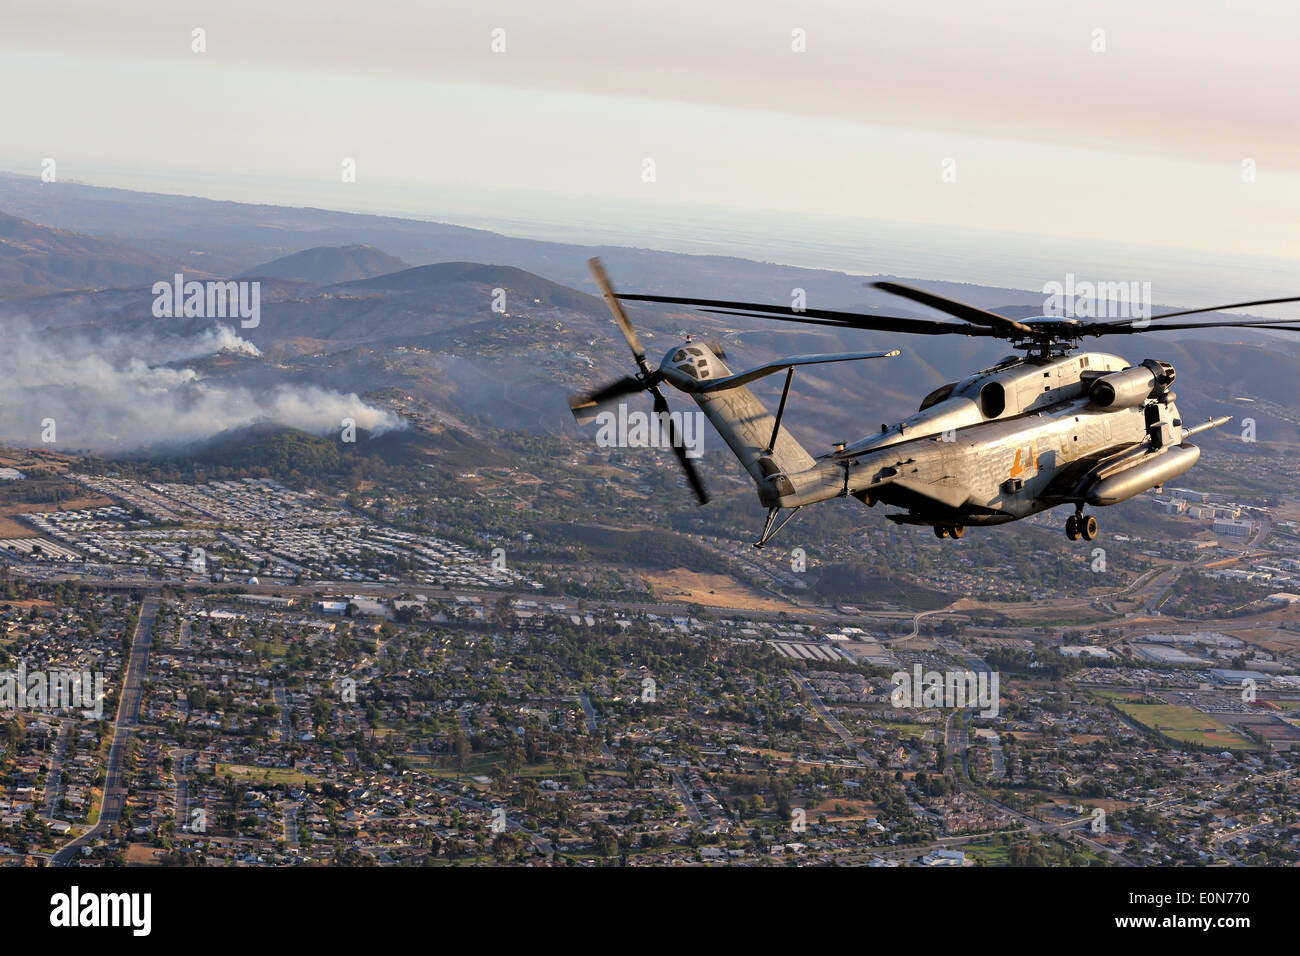 A US Marine Corps CH-53D Sea Stallion helicopter approaches the Cocos wildfire to assist in firefighting May 15, 2014 around San Marcos, California.  Evacuations forced more than 13,000 people from their homes as the fire burned across San Diego County. Stock Photo